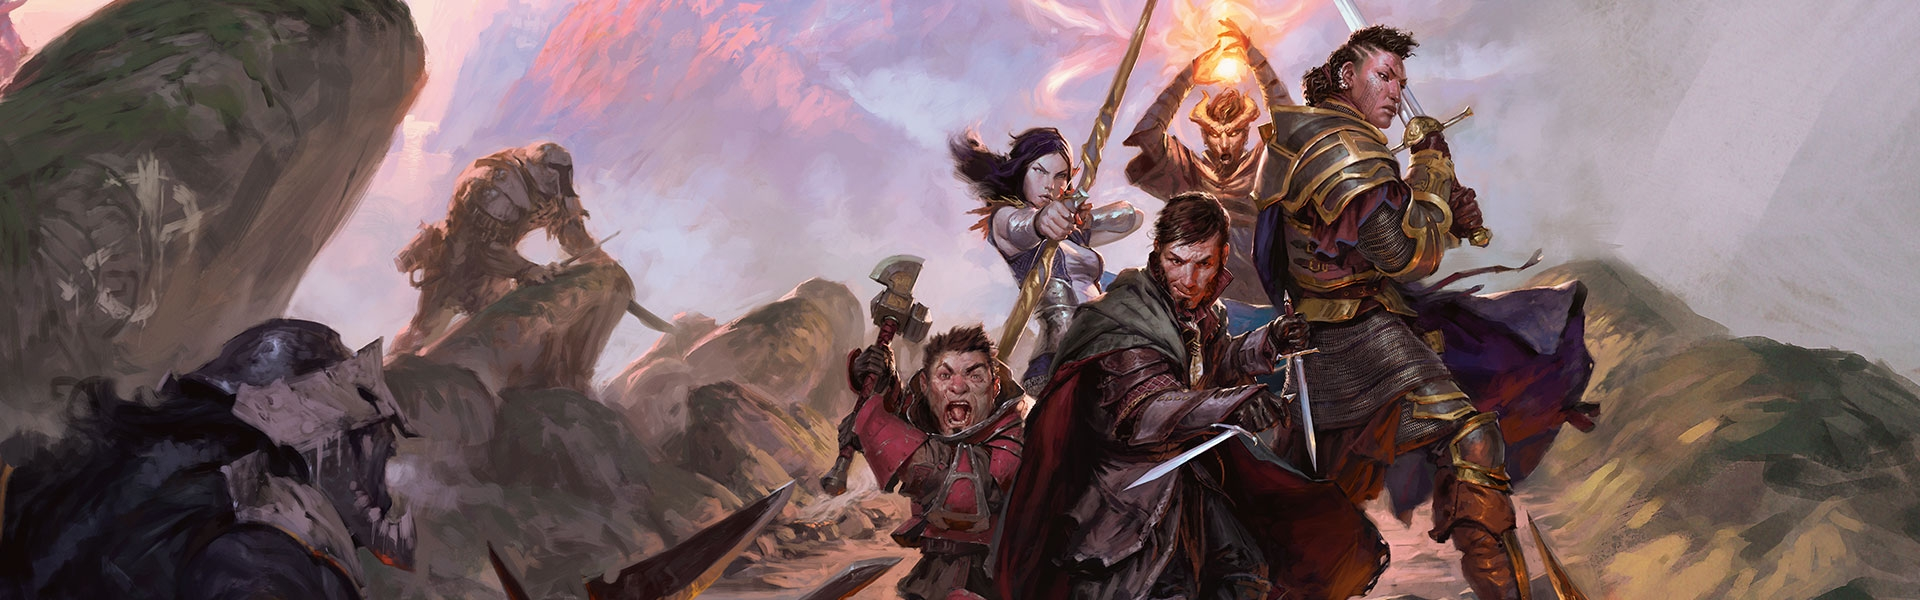 the great list of dungeons amp dragons 5e adventures - 1920×500